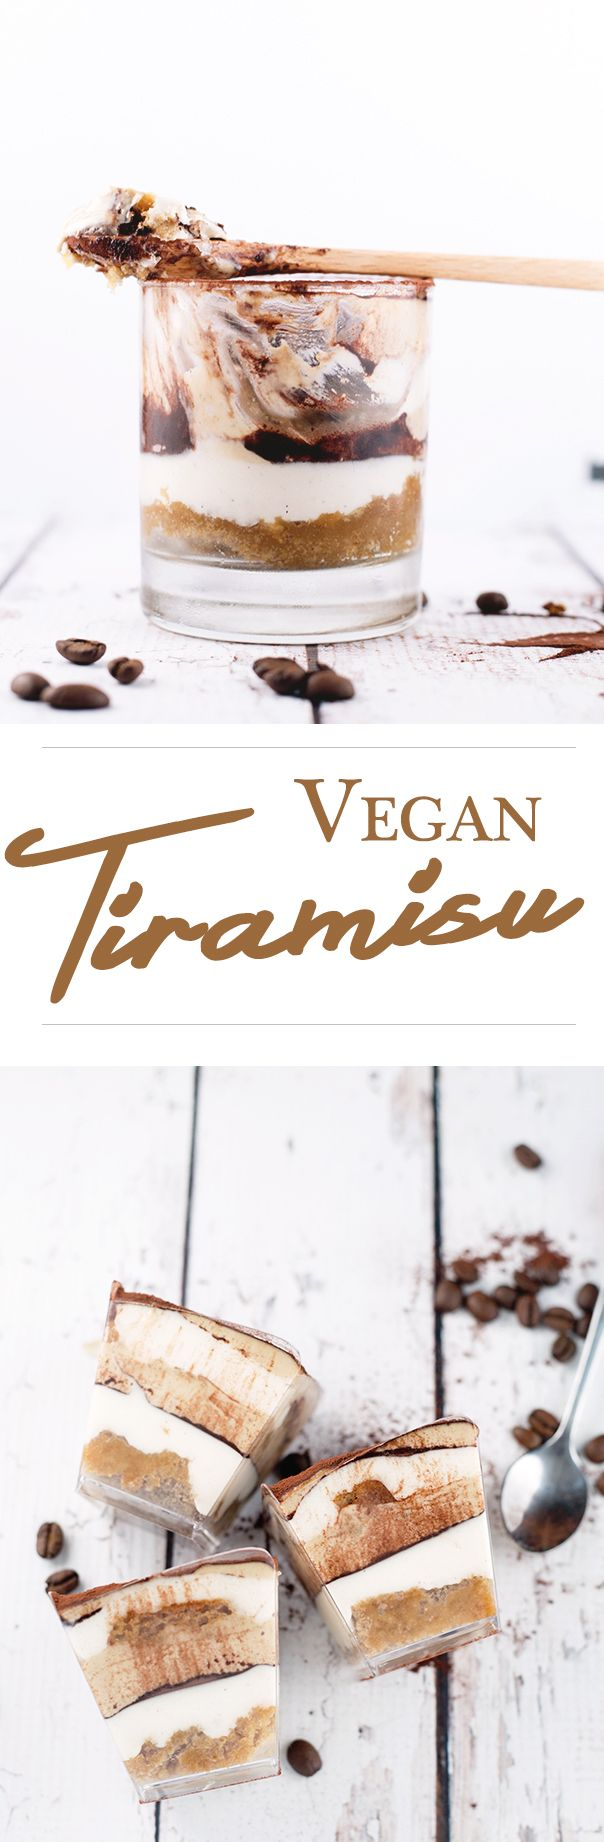 "Decadent Tiramisu - you won't believe it's 100% Vegan. Coffee/Kahlua Soaked Sponge and Vegan ""Mascarpone"" Filling. Yum. #vegan #tiramisu #dessert #veganrecipe #coffee #cake #delicious"